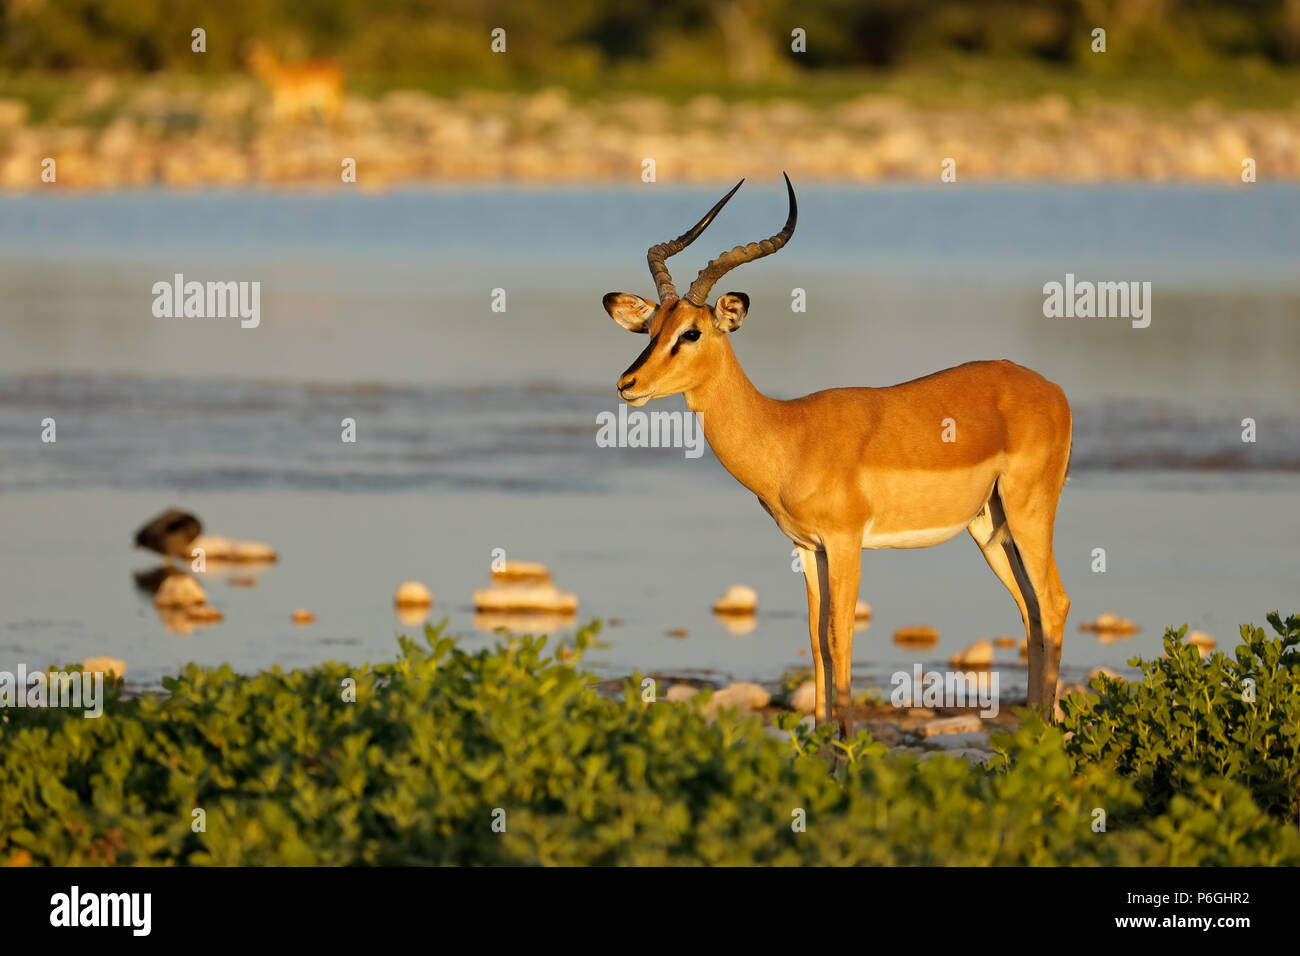 An impala antelope (Aepyceros melampus) at a waterhole, Etosha National Park, Namibia - Stock Image